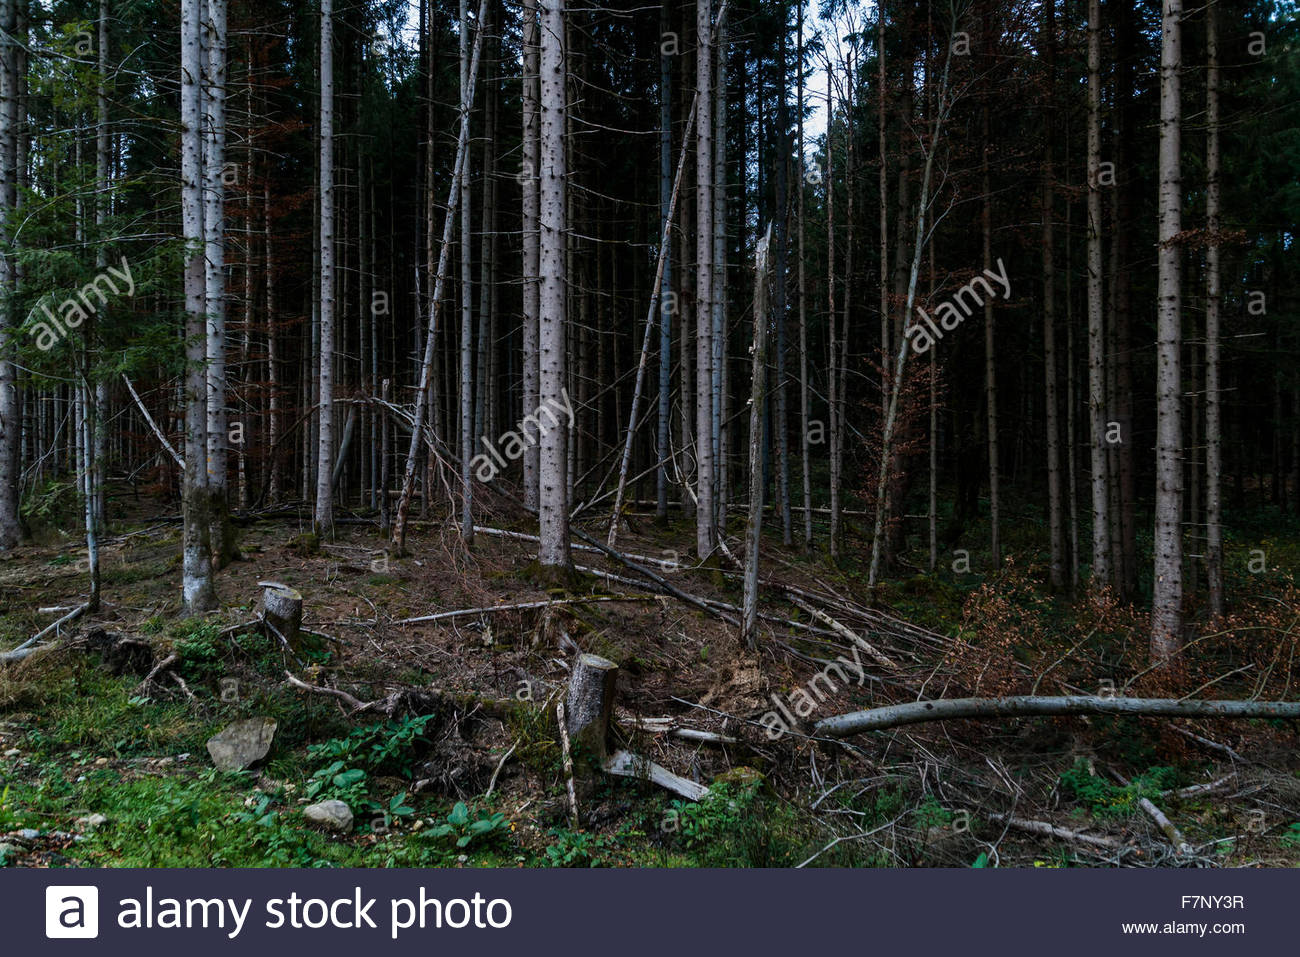 Germany, Bavaria, spruces and beeches - Stock Image